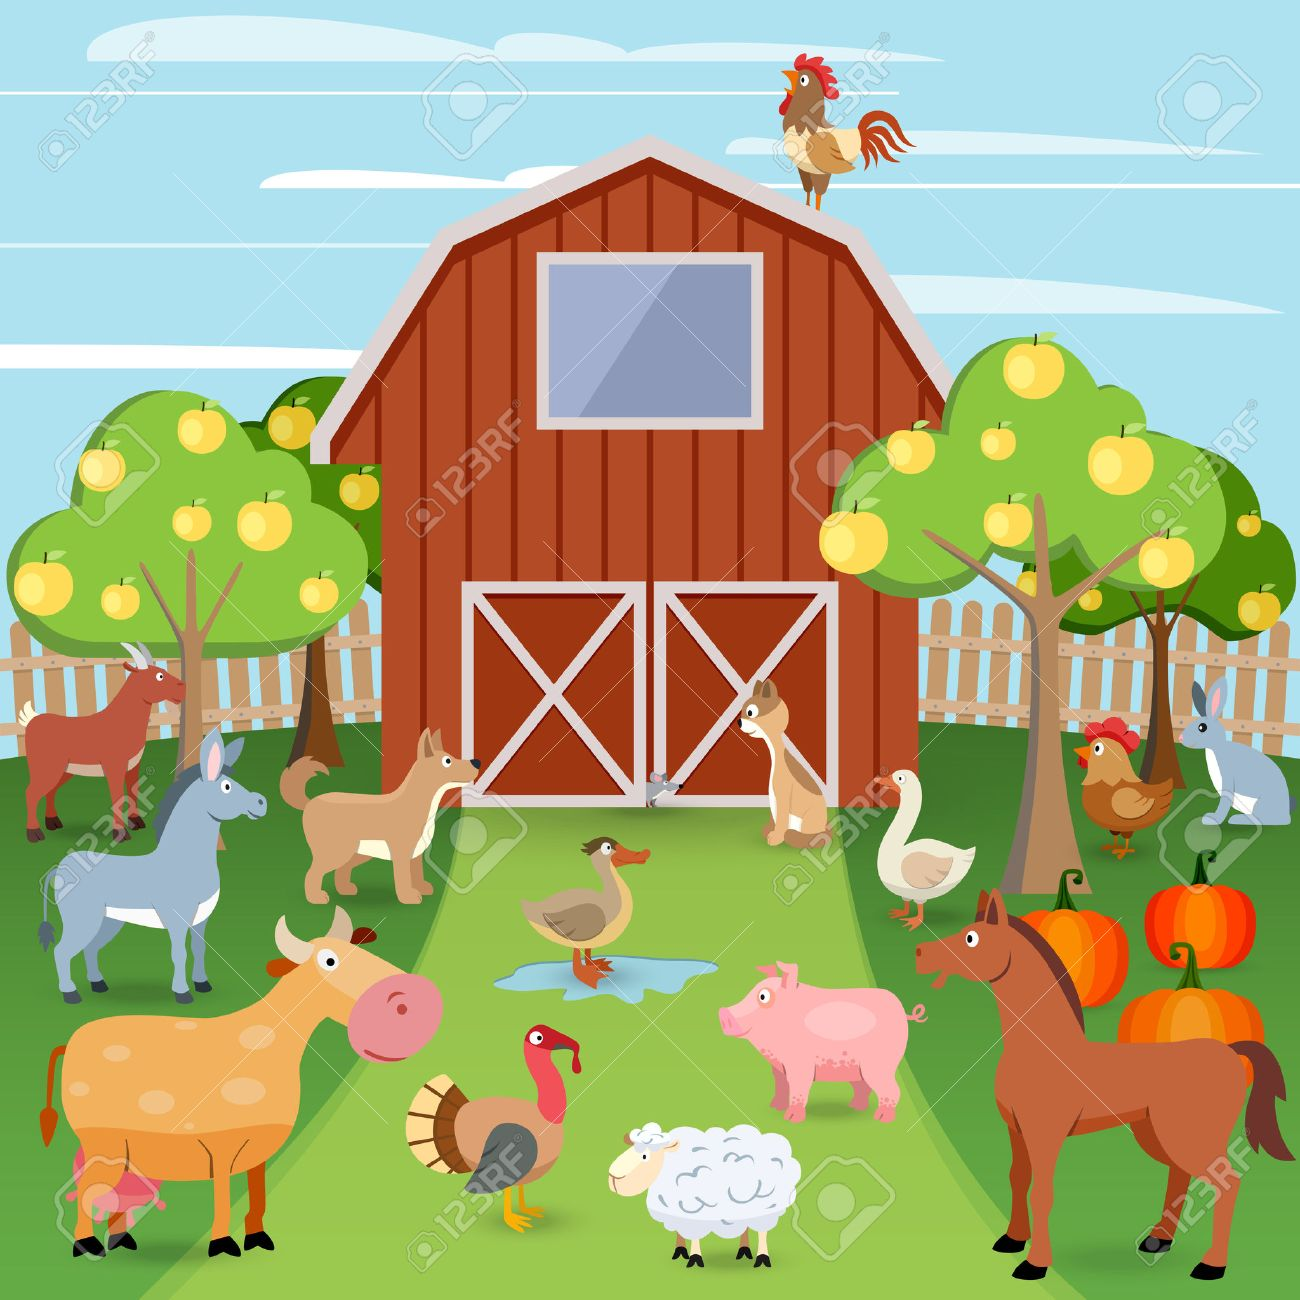 Summer Farm With Wooden House And Domestic Animals Vector Illustration Royalty Free Cliparts Vectors And Stock Illustration Image 32133891